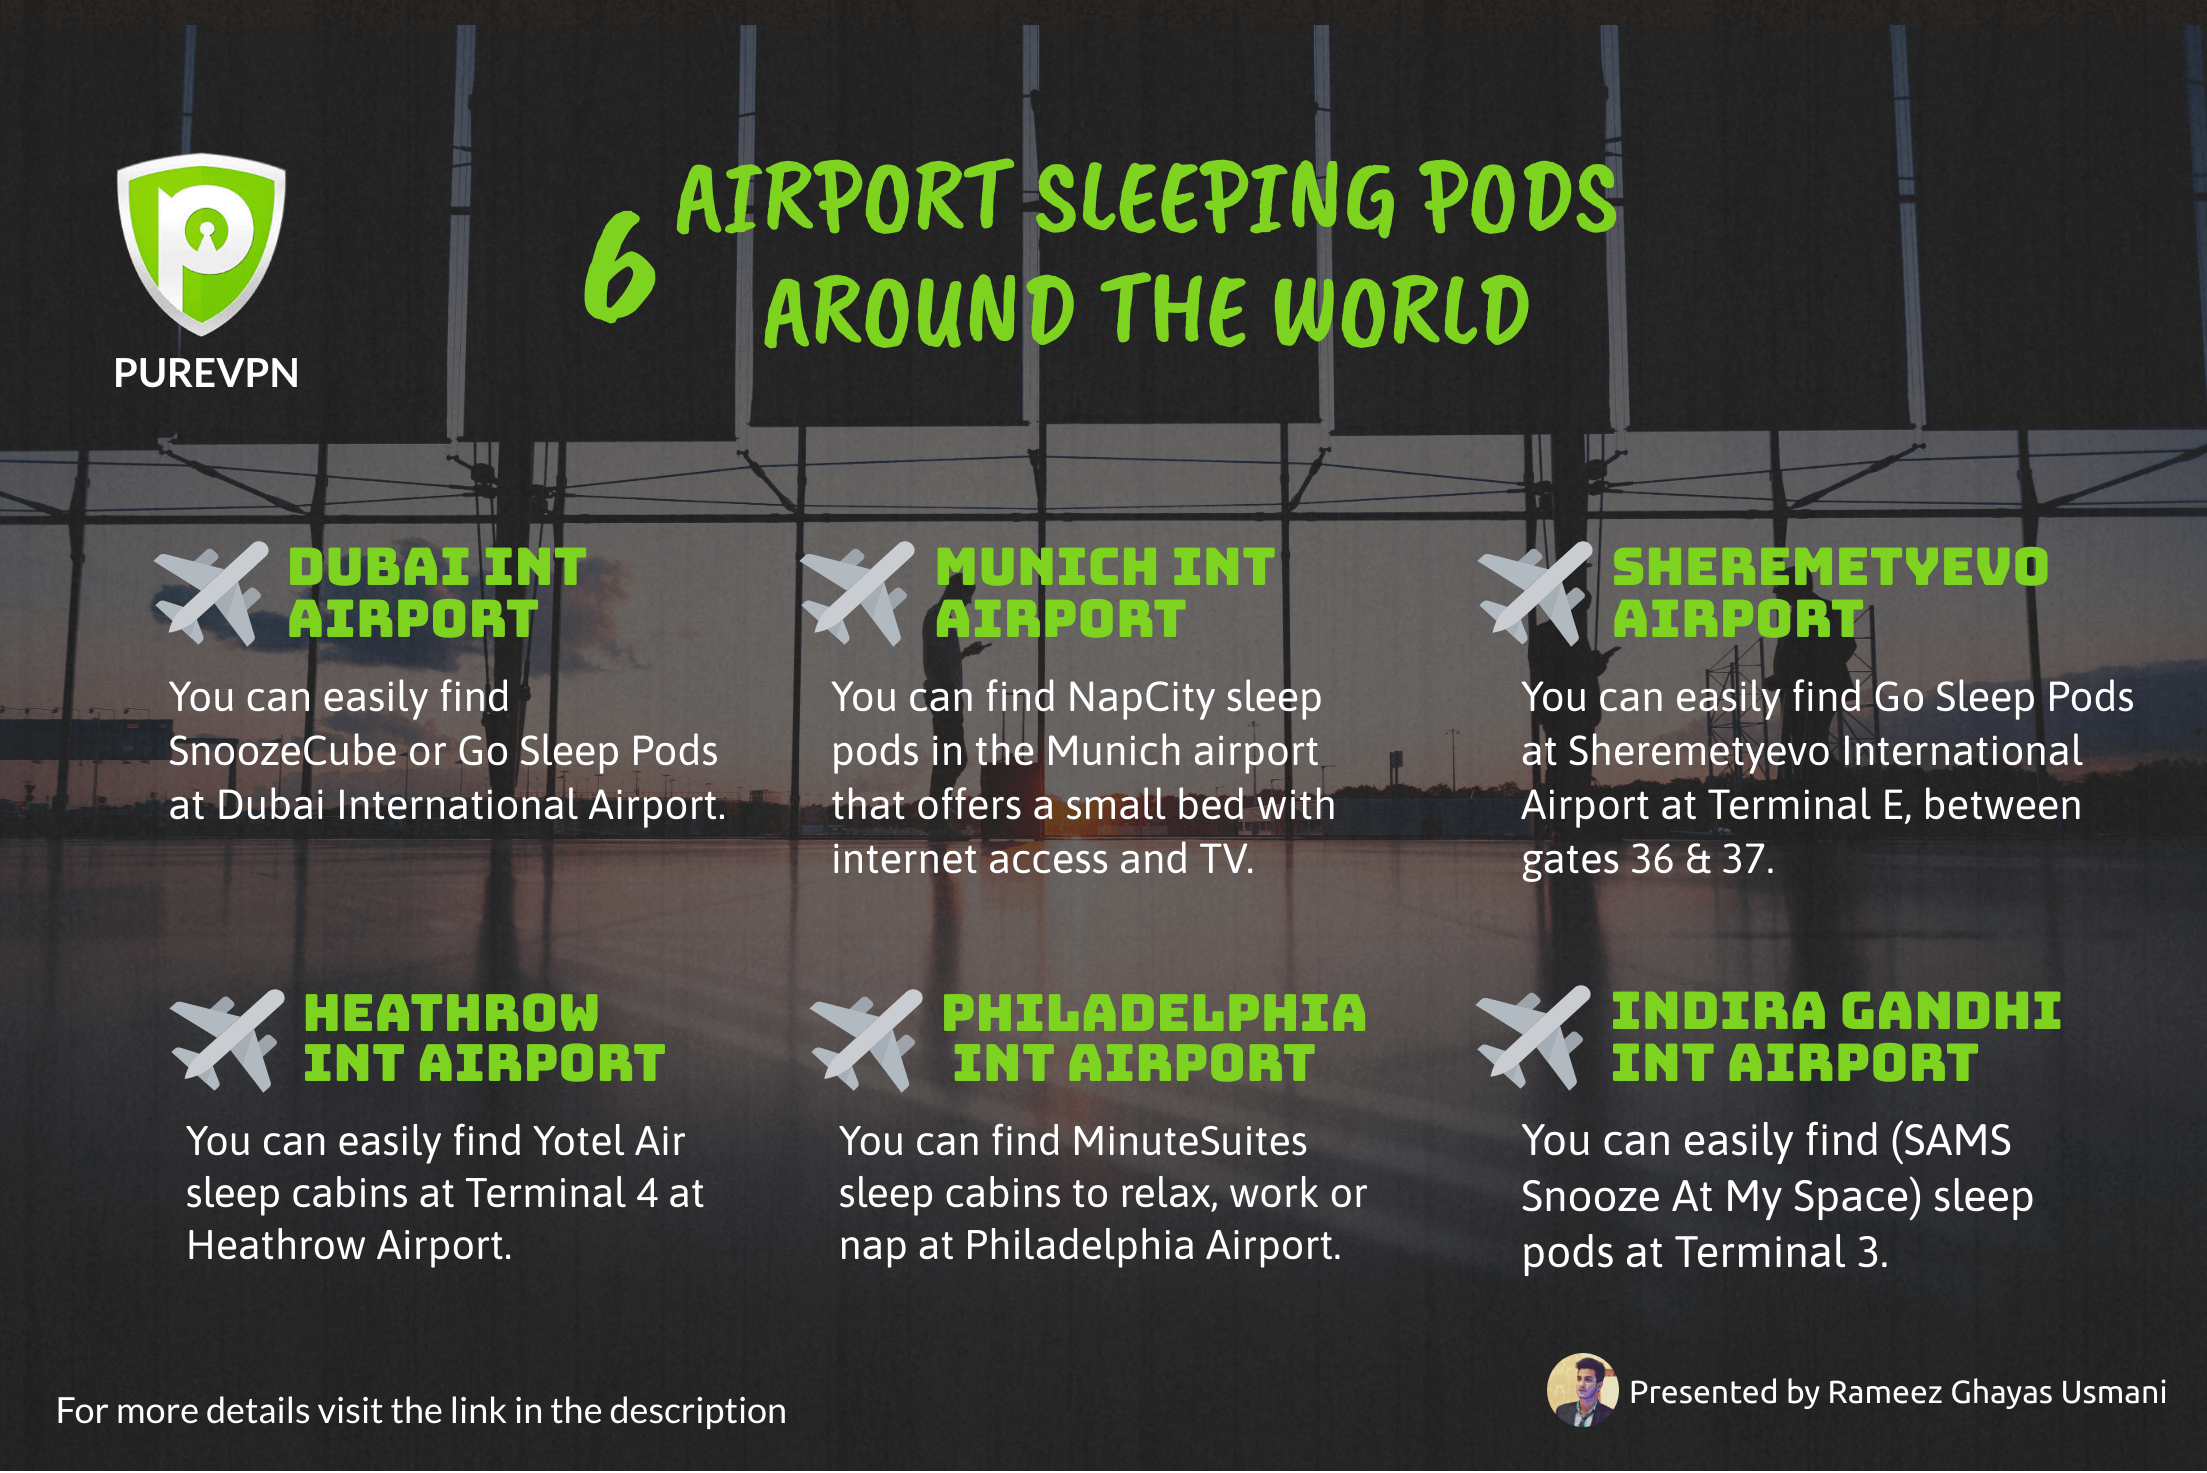 Airport Sleeping Pods All Around The World